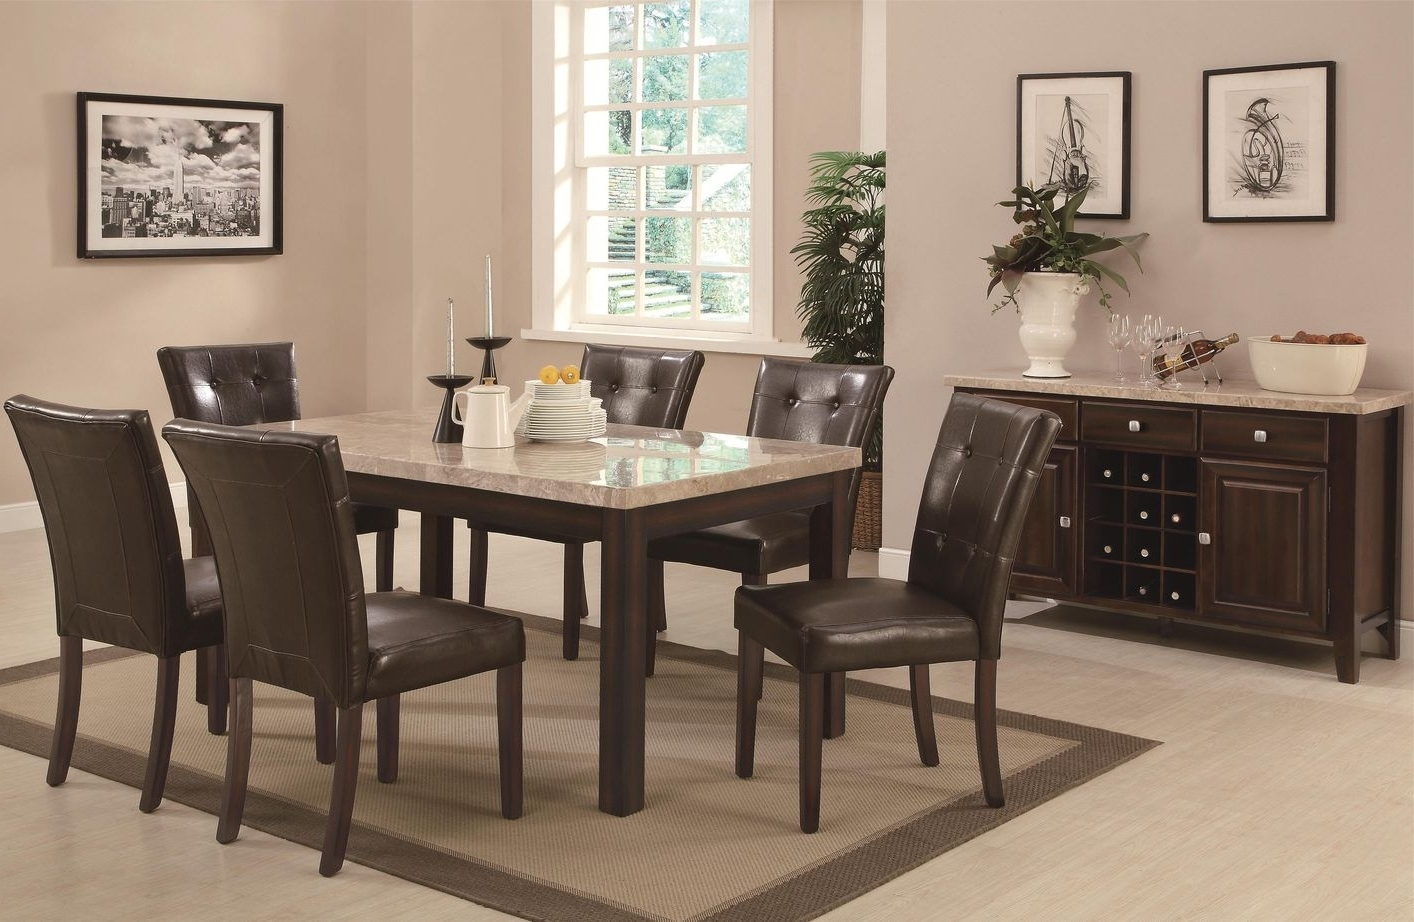 Milton Cappuccino Wood And Marble Dining Table – Steal A Sofa Within 2018 Milton Dining Tables (View 20 of 25)